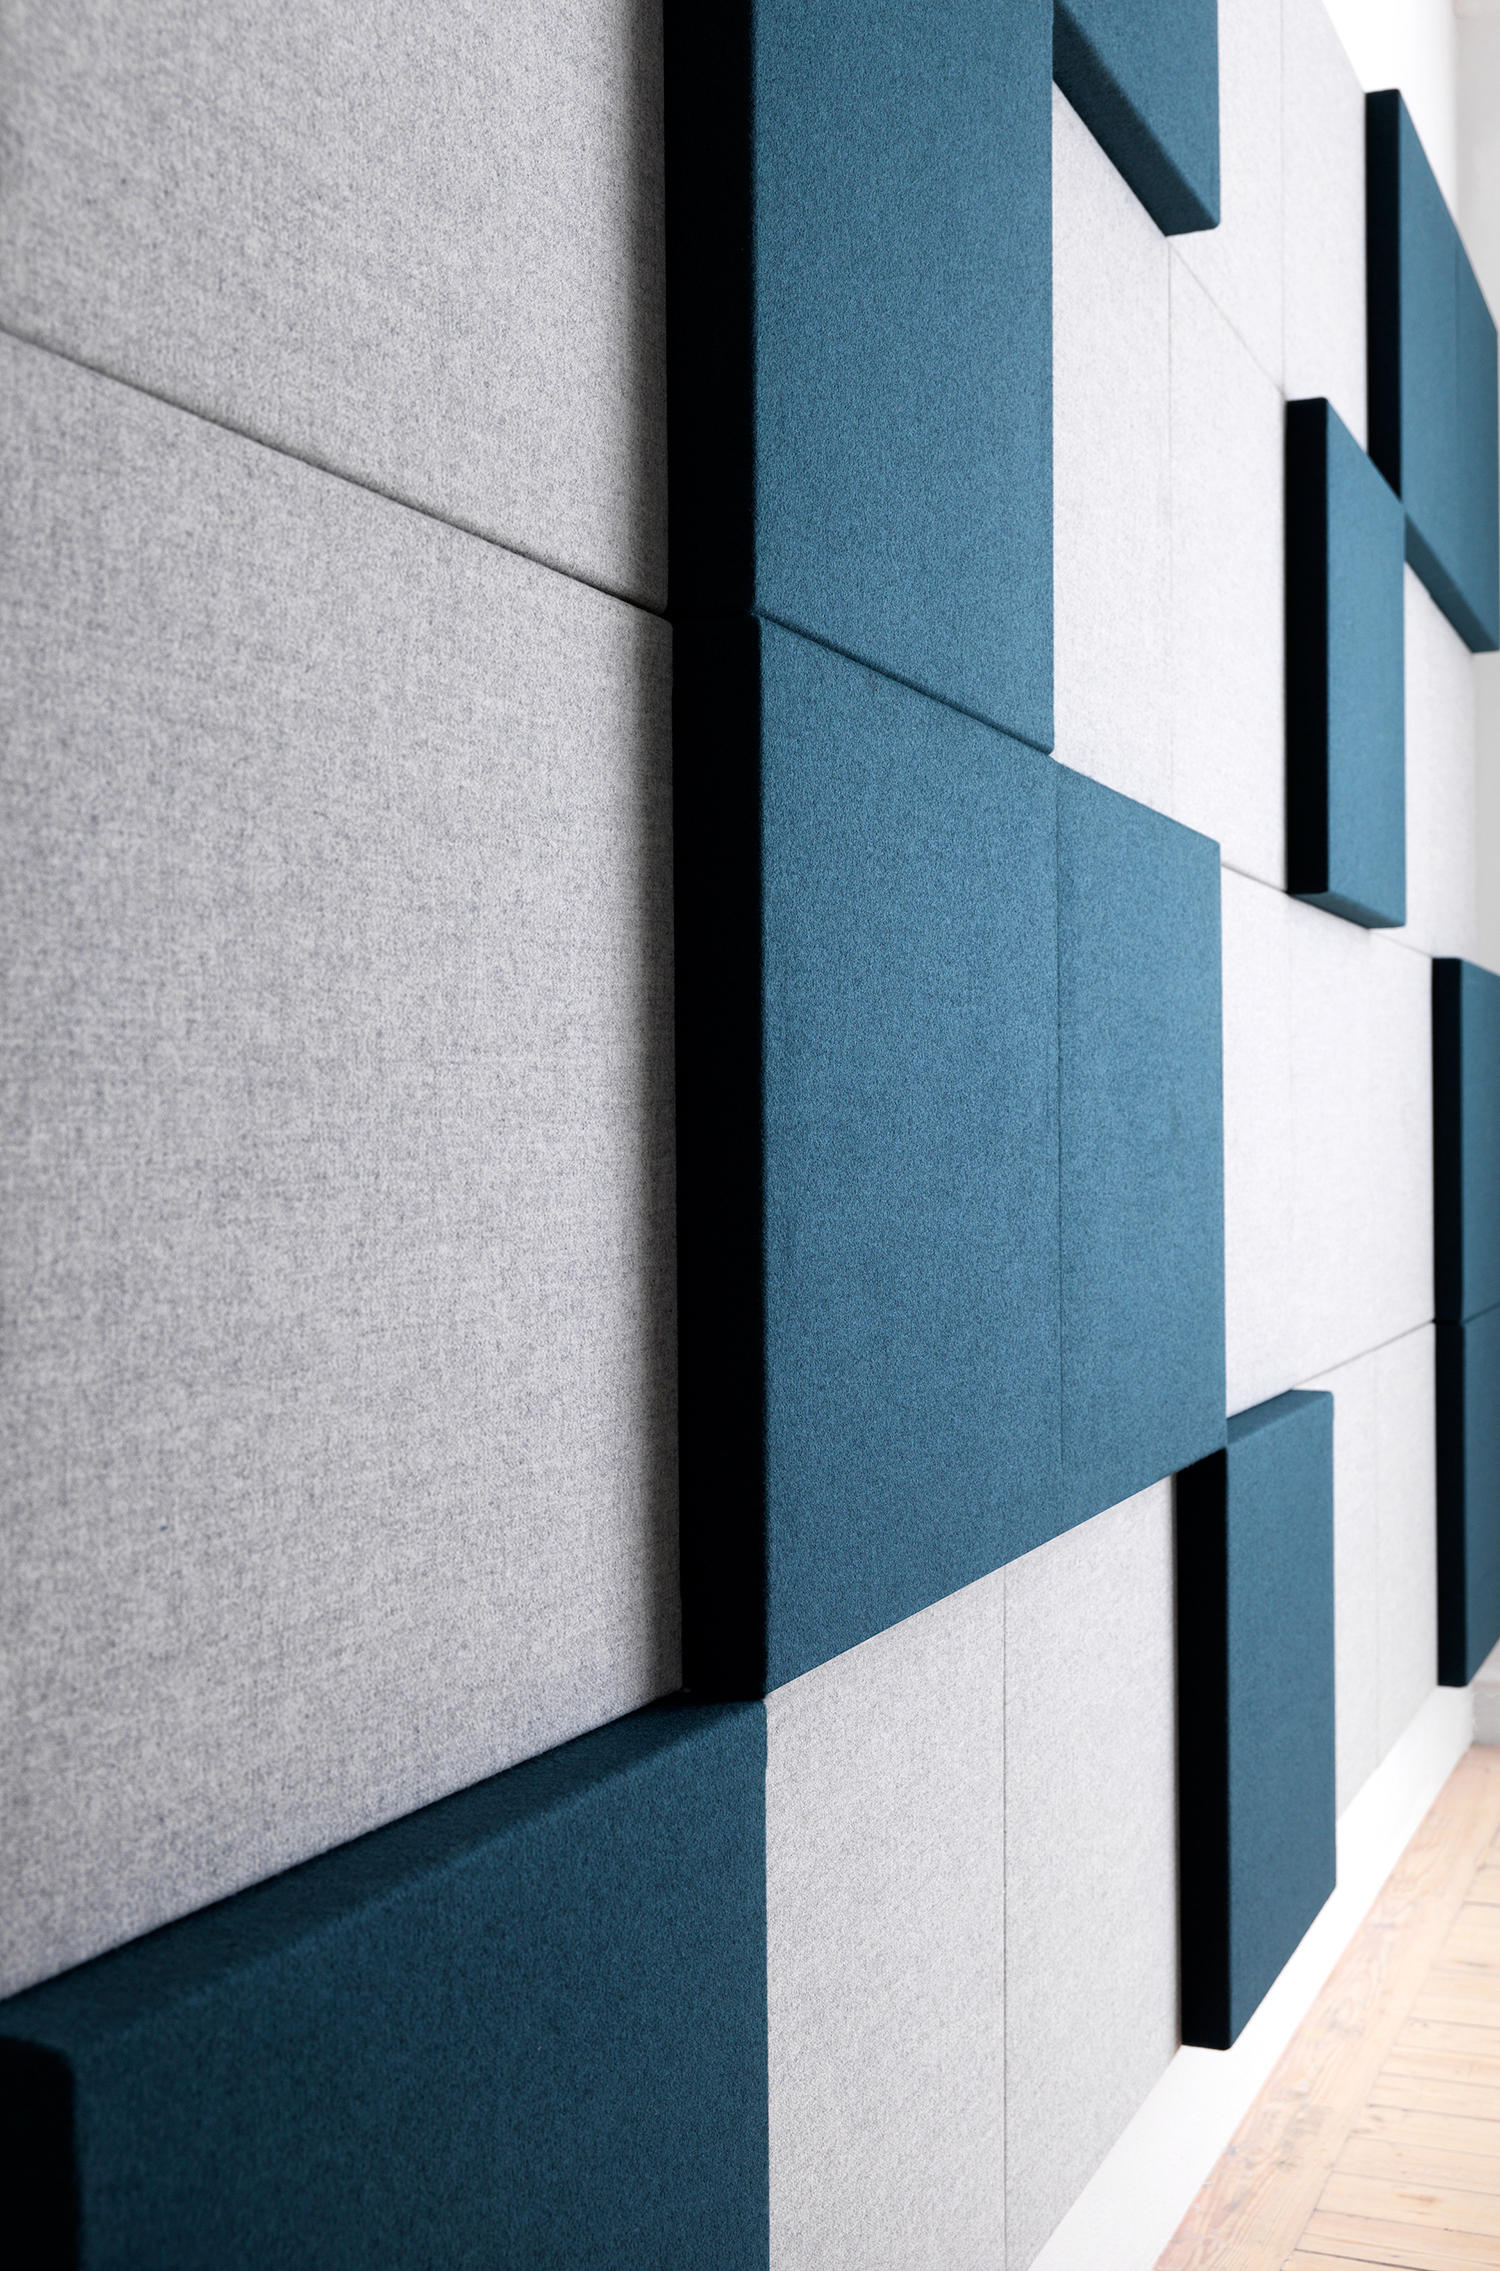 SONEO WALL - Sound absorbing fabric systems from Abstracta | Architonic